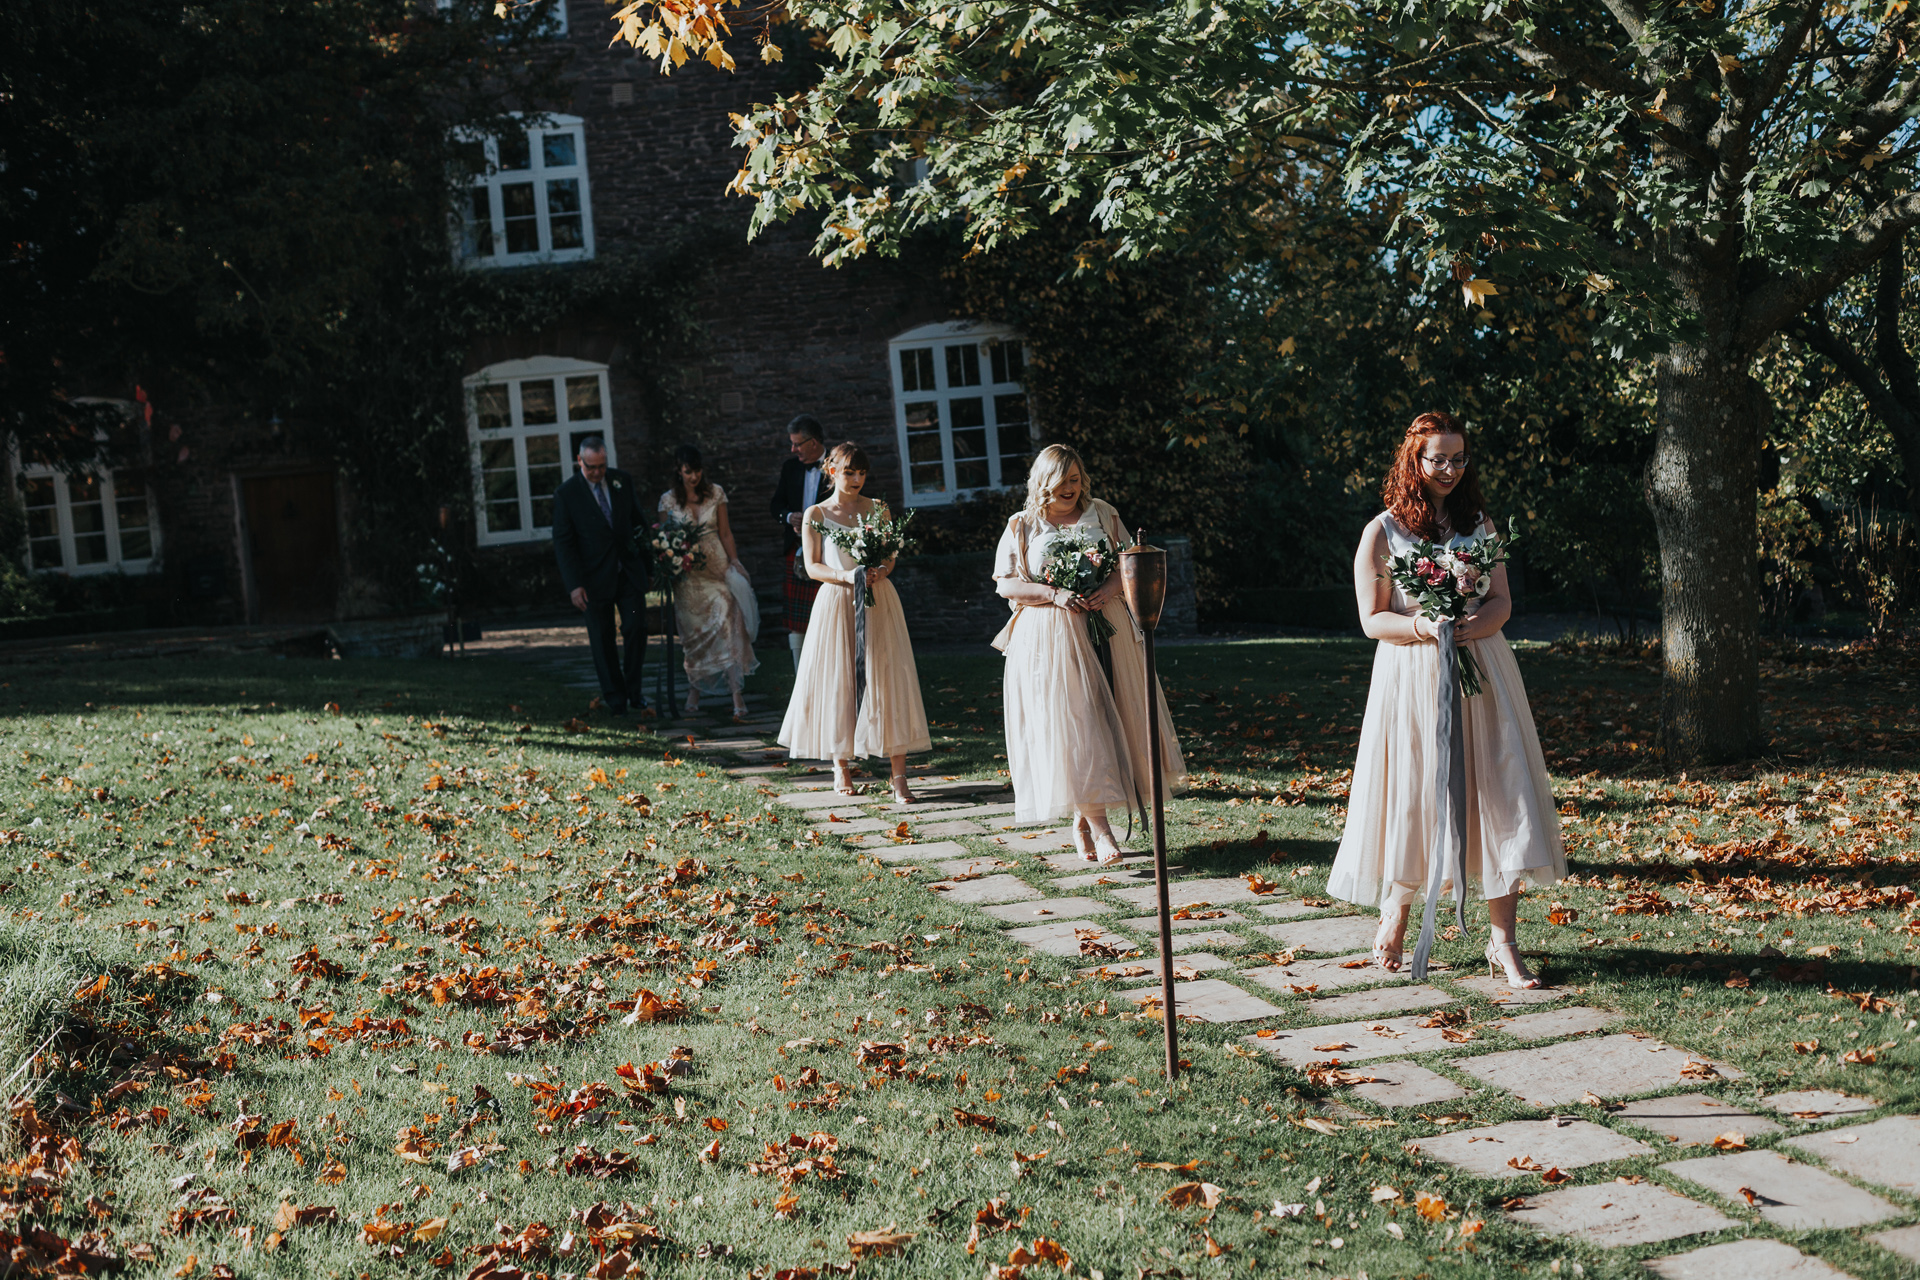 The bridesmaids lead the way across the lawn towards the ceremony room.